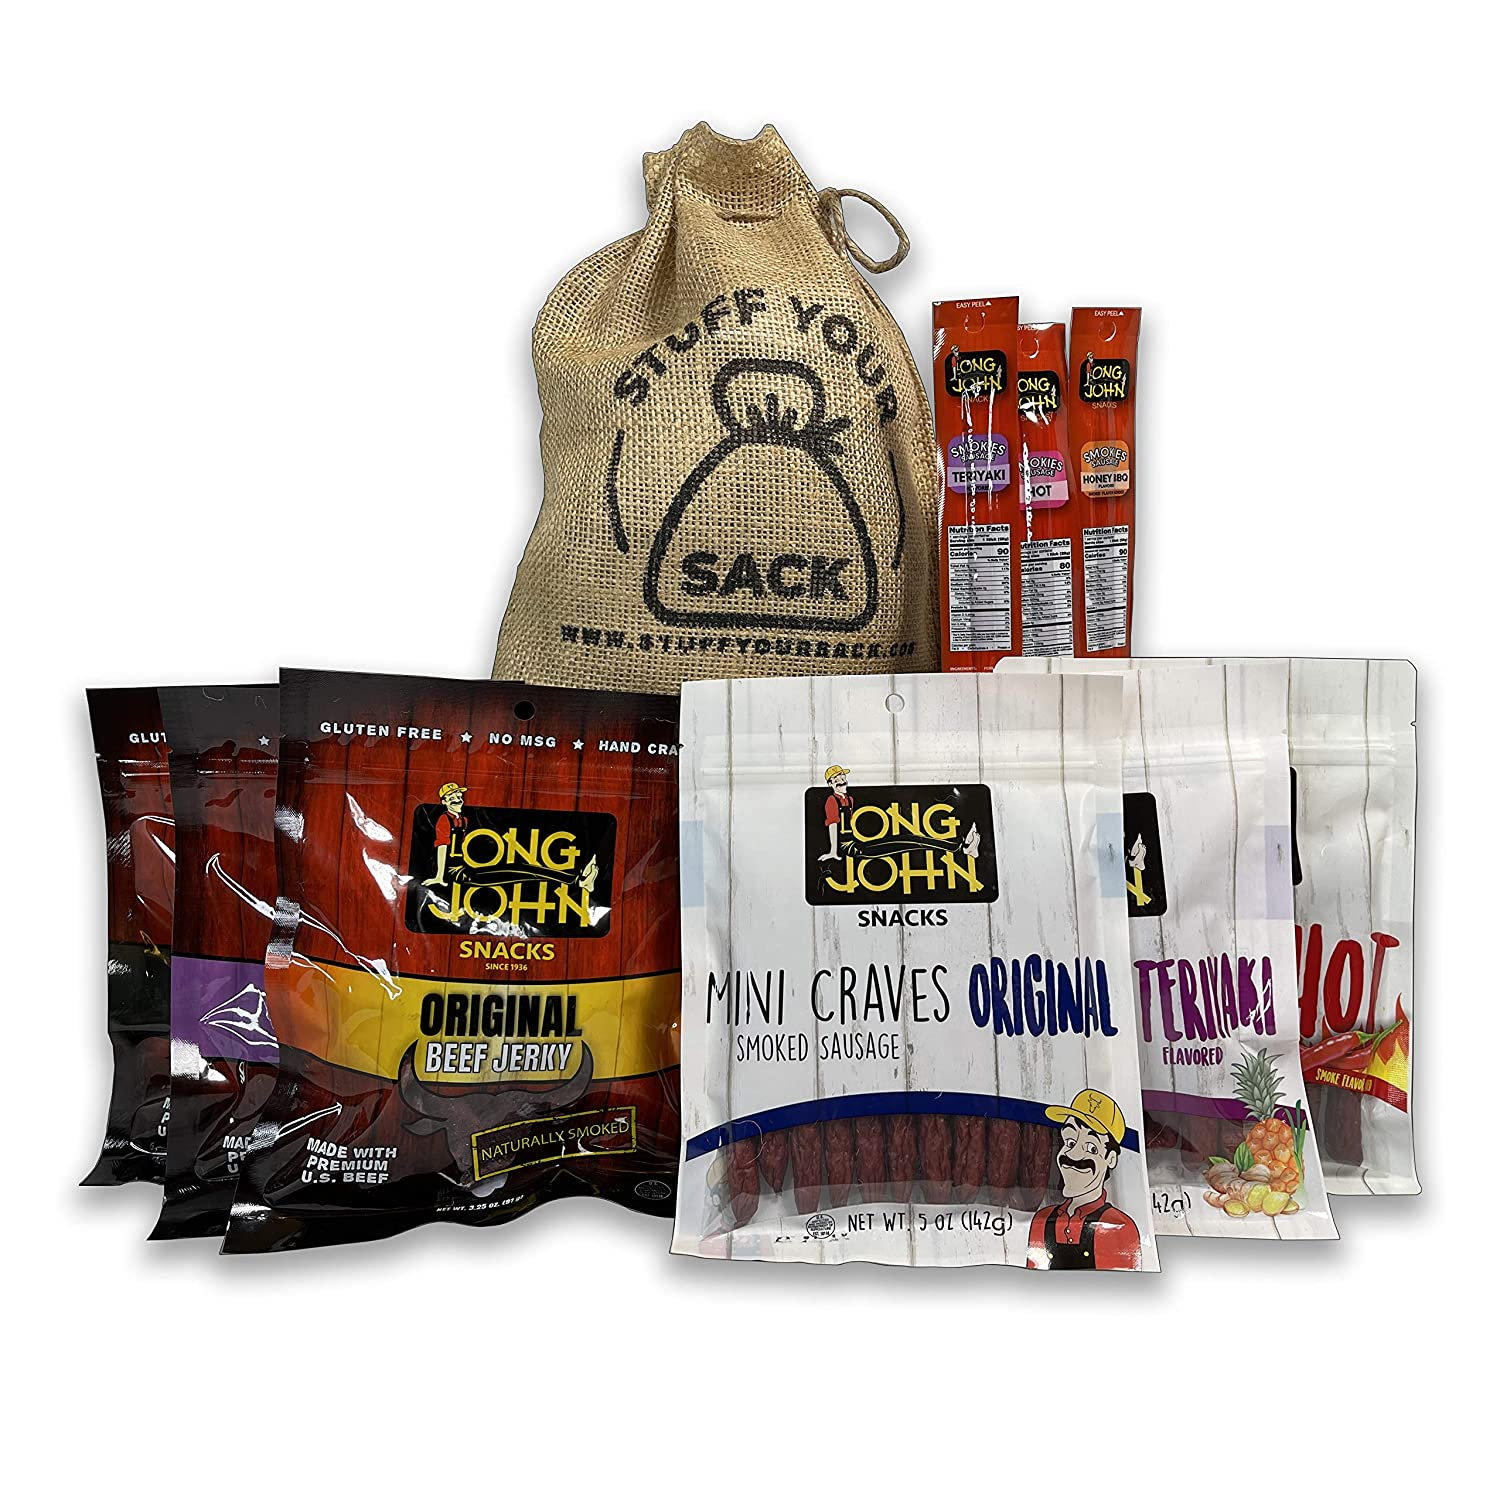 Long John's Beef Jerky Box 1 3/4 Pound Sampler Sack | High Protein, Low Carb, American Beef | Meat Snack Stick Sampler Gift Basket | Gift for Men - Military Care Package - Father's Day Gift - 9 Items